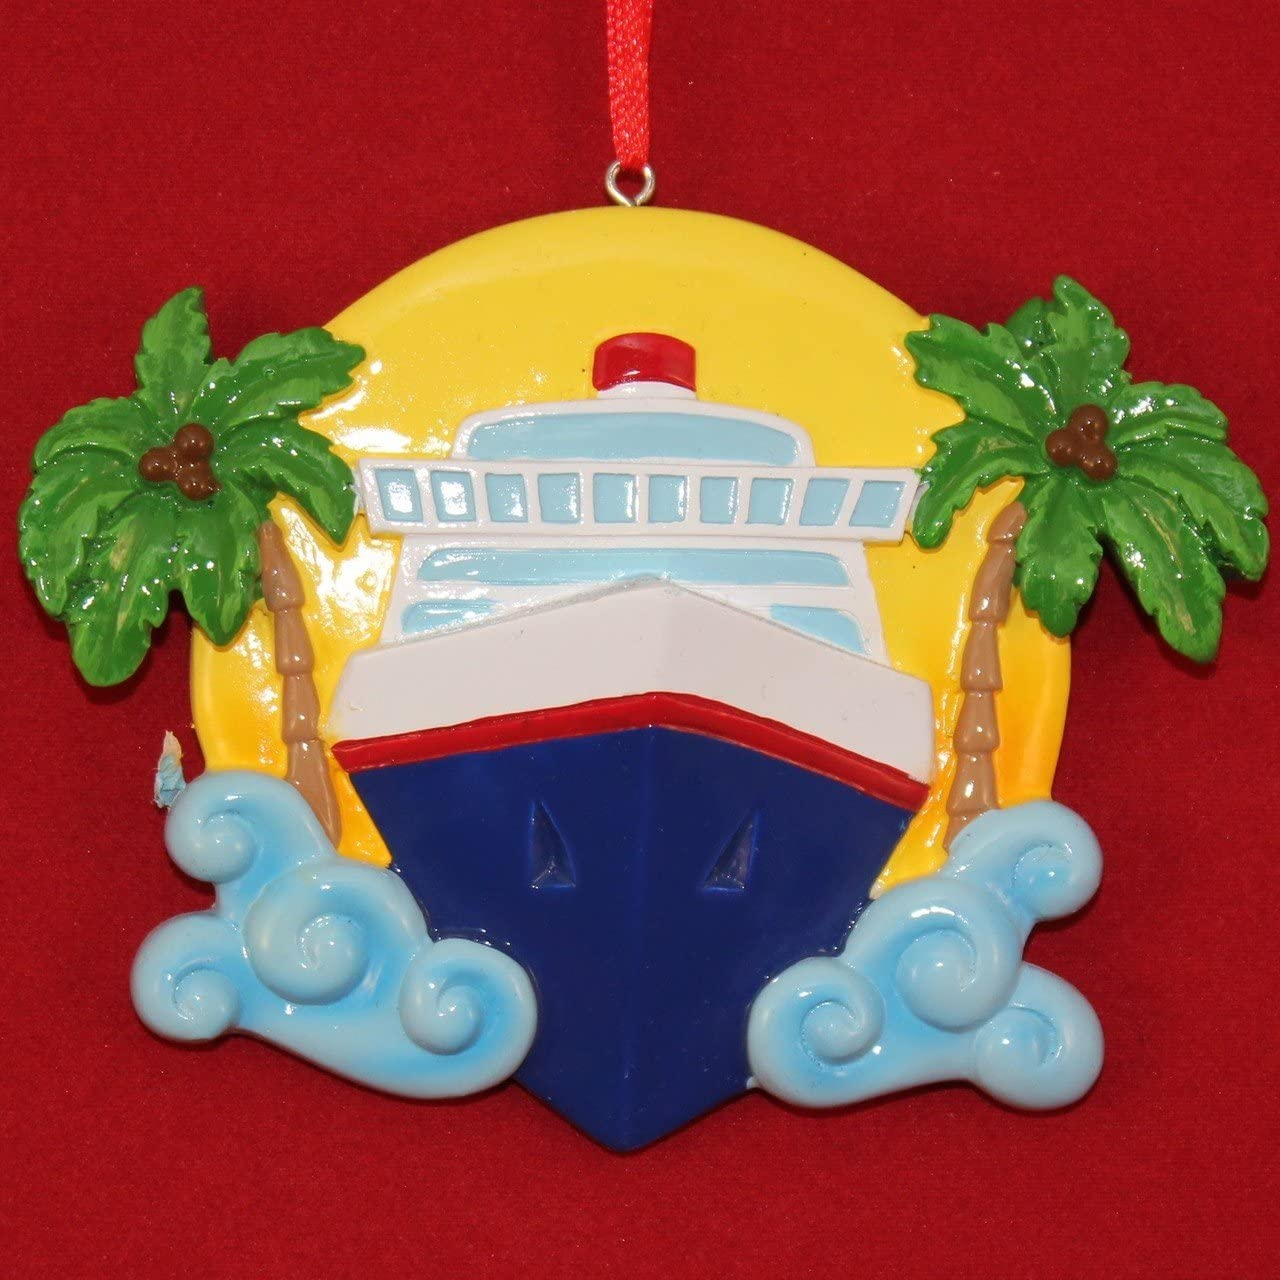 Amazon Com Grantwood Technology Personalized Christmas Ornaments Travel Cruise Ship Home Kitchen 1 year ago1 year ago. grantwood technology personalized christmas ornaments travel cruise ship